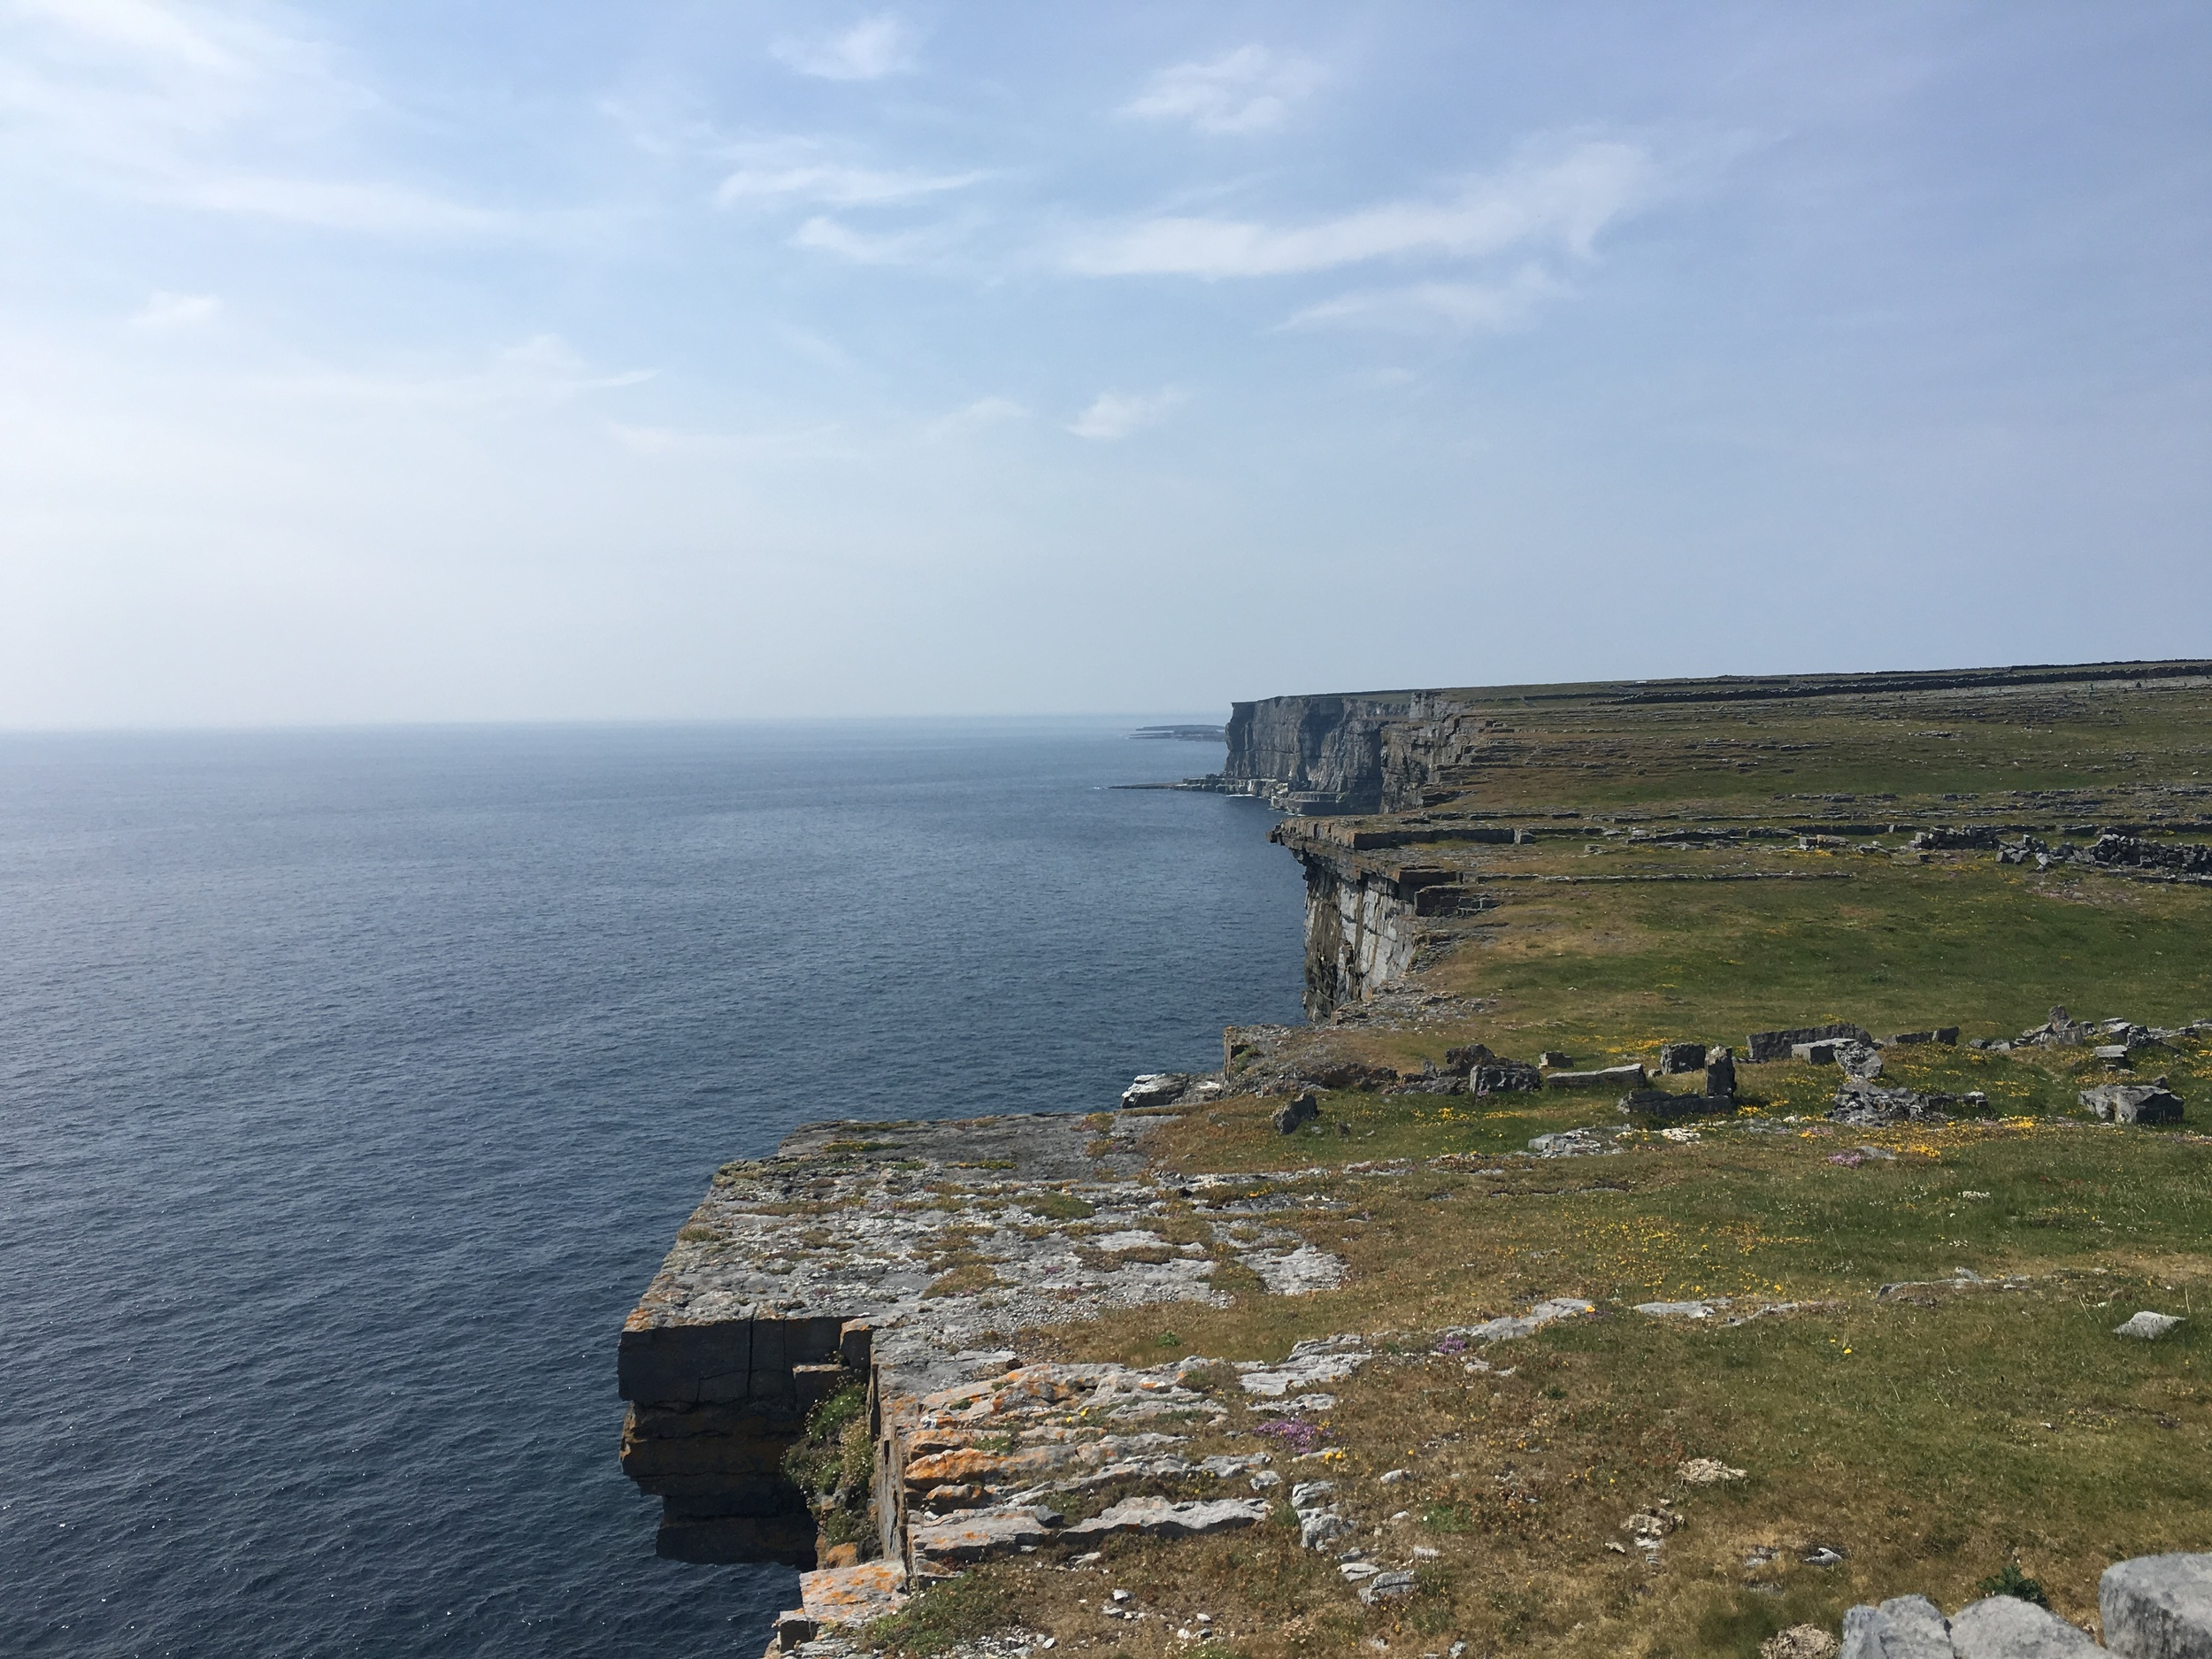 View from Dun Aonghasa